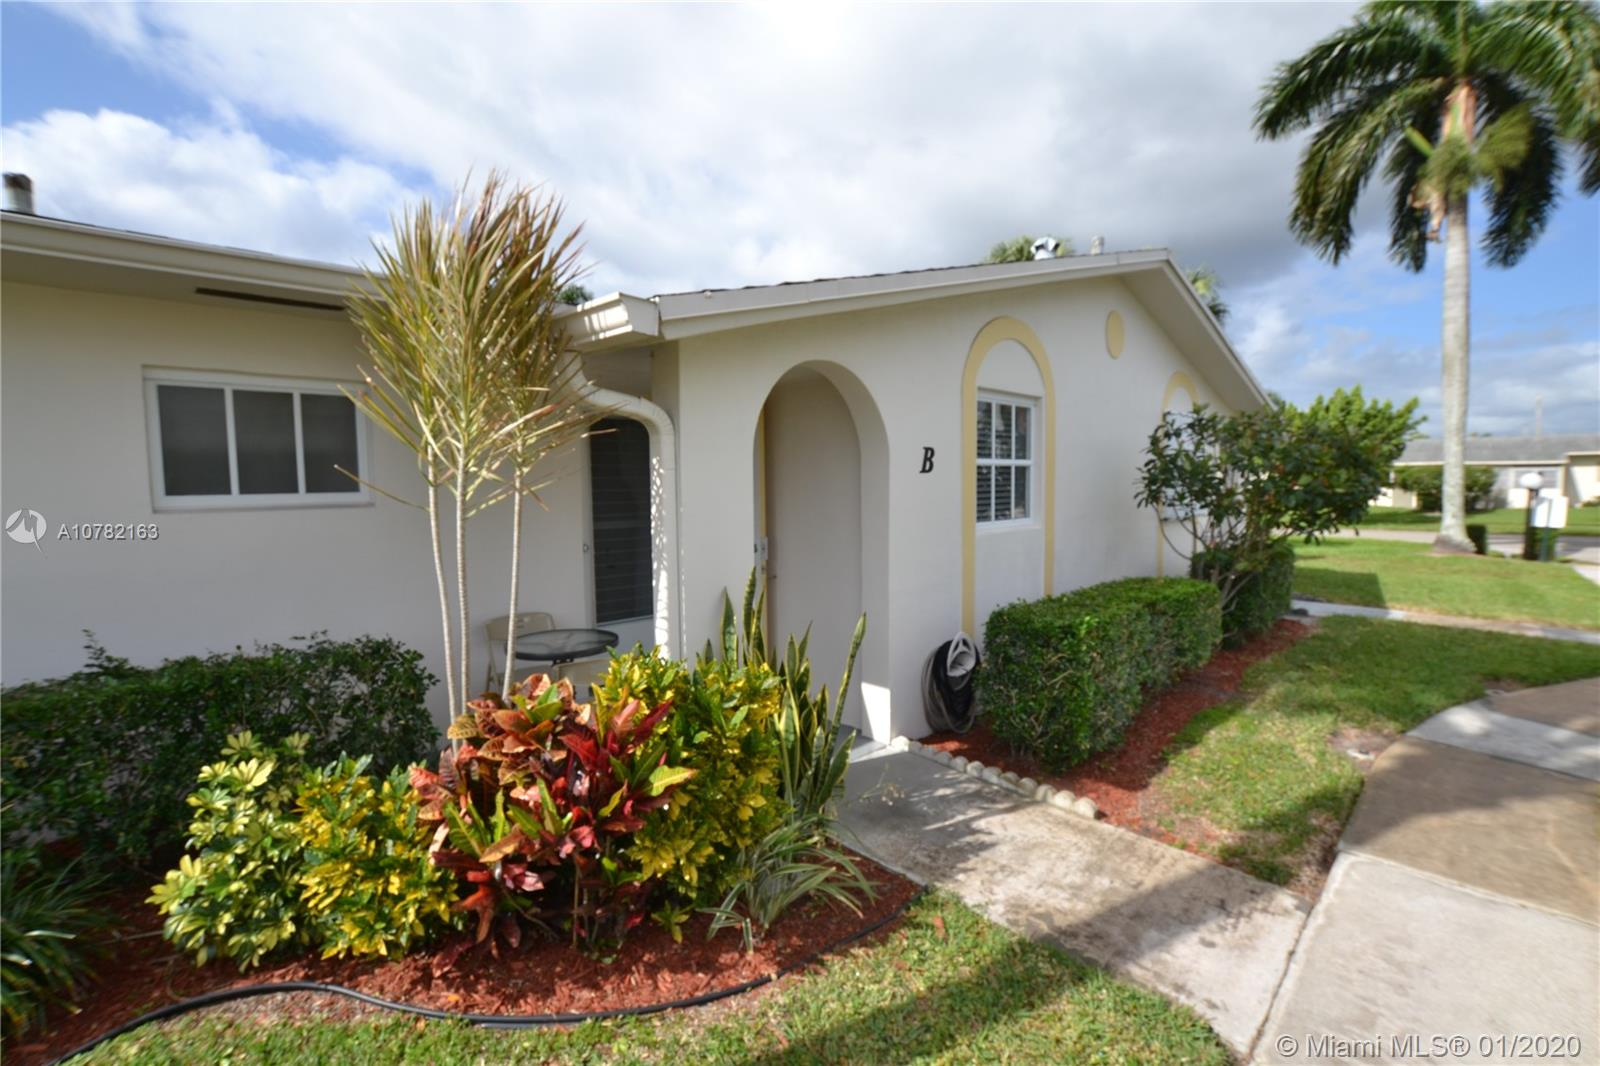 2680 Emory Dr E B, West Palm Beach, FL 33415